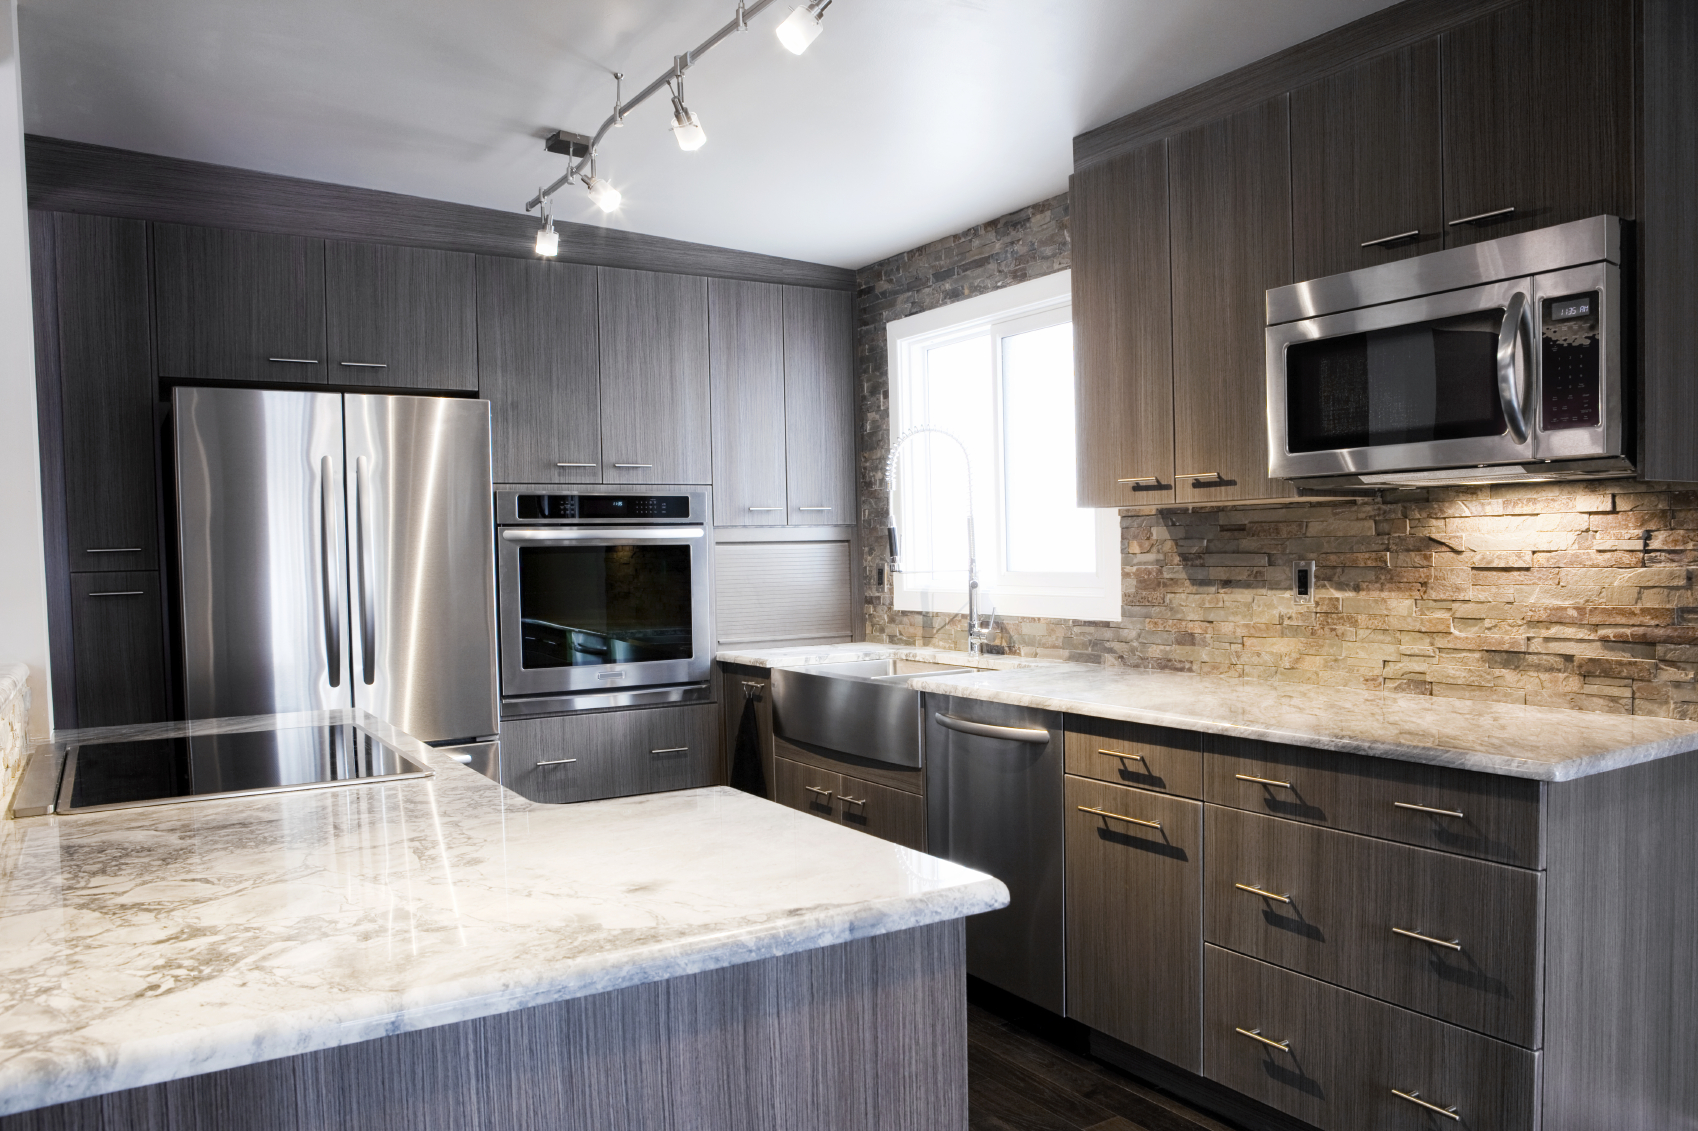 This cozy space is anchored by old fashioned brick backsplash wall and marble countertops. Grey natural wood contrasts with aluminum appliances over dark hardwood flooring.